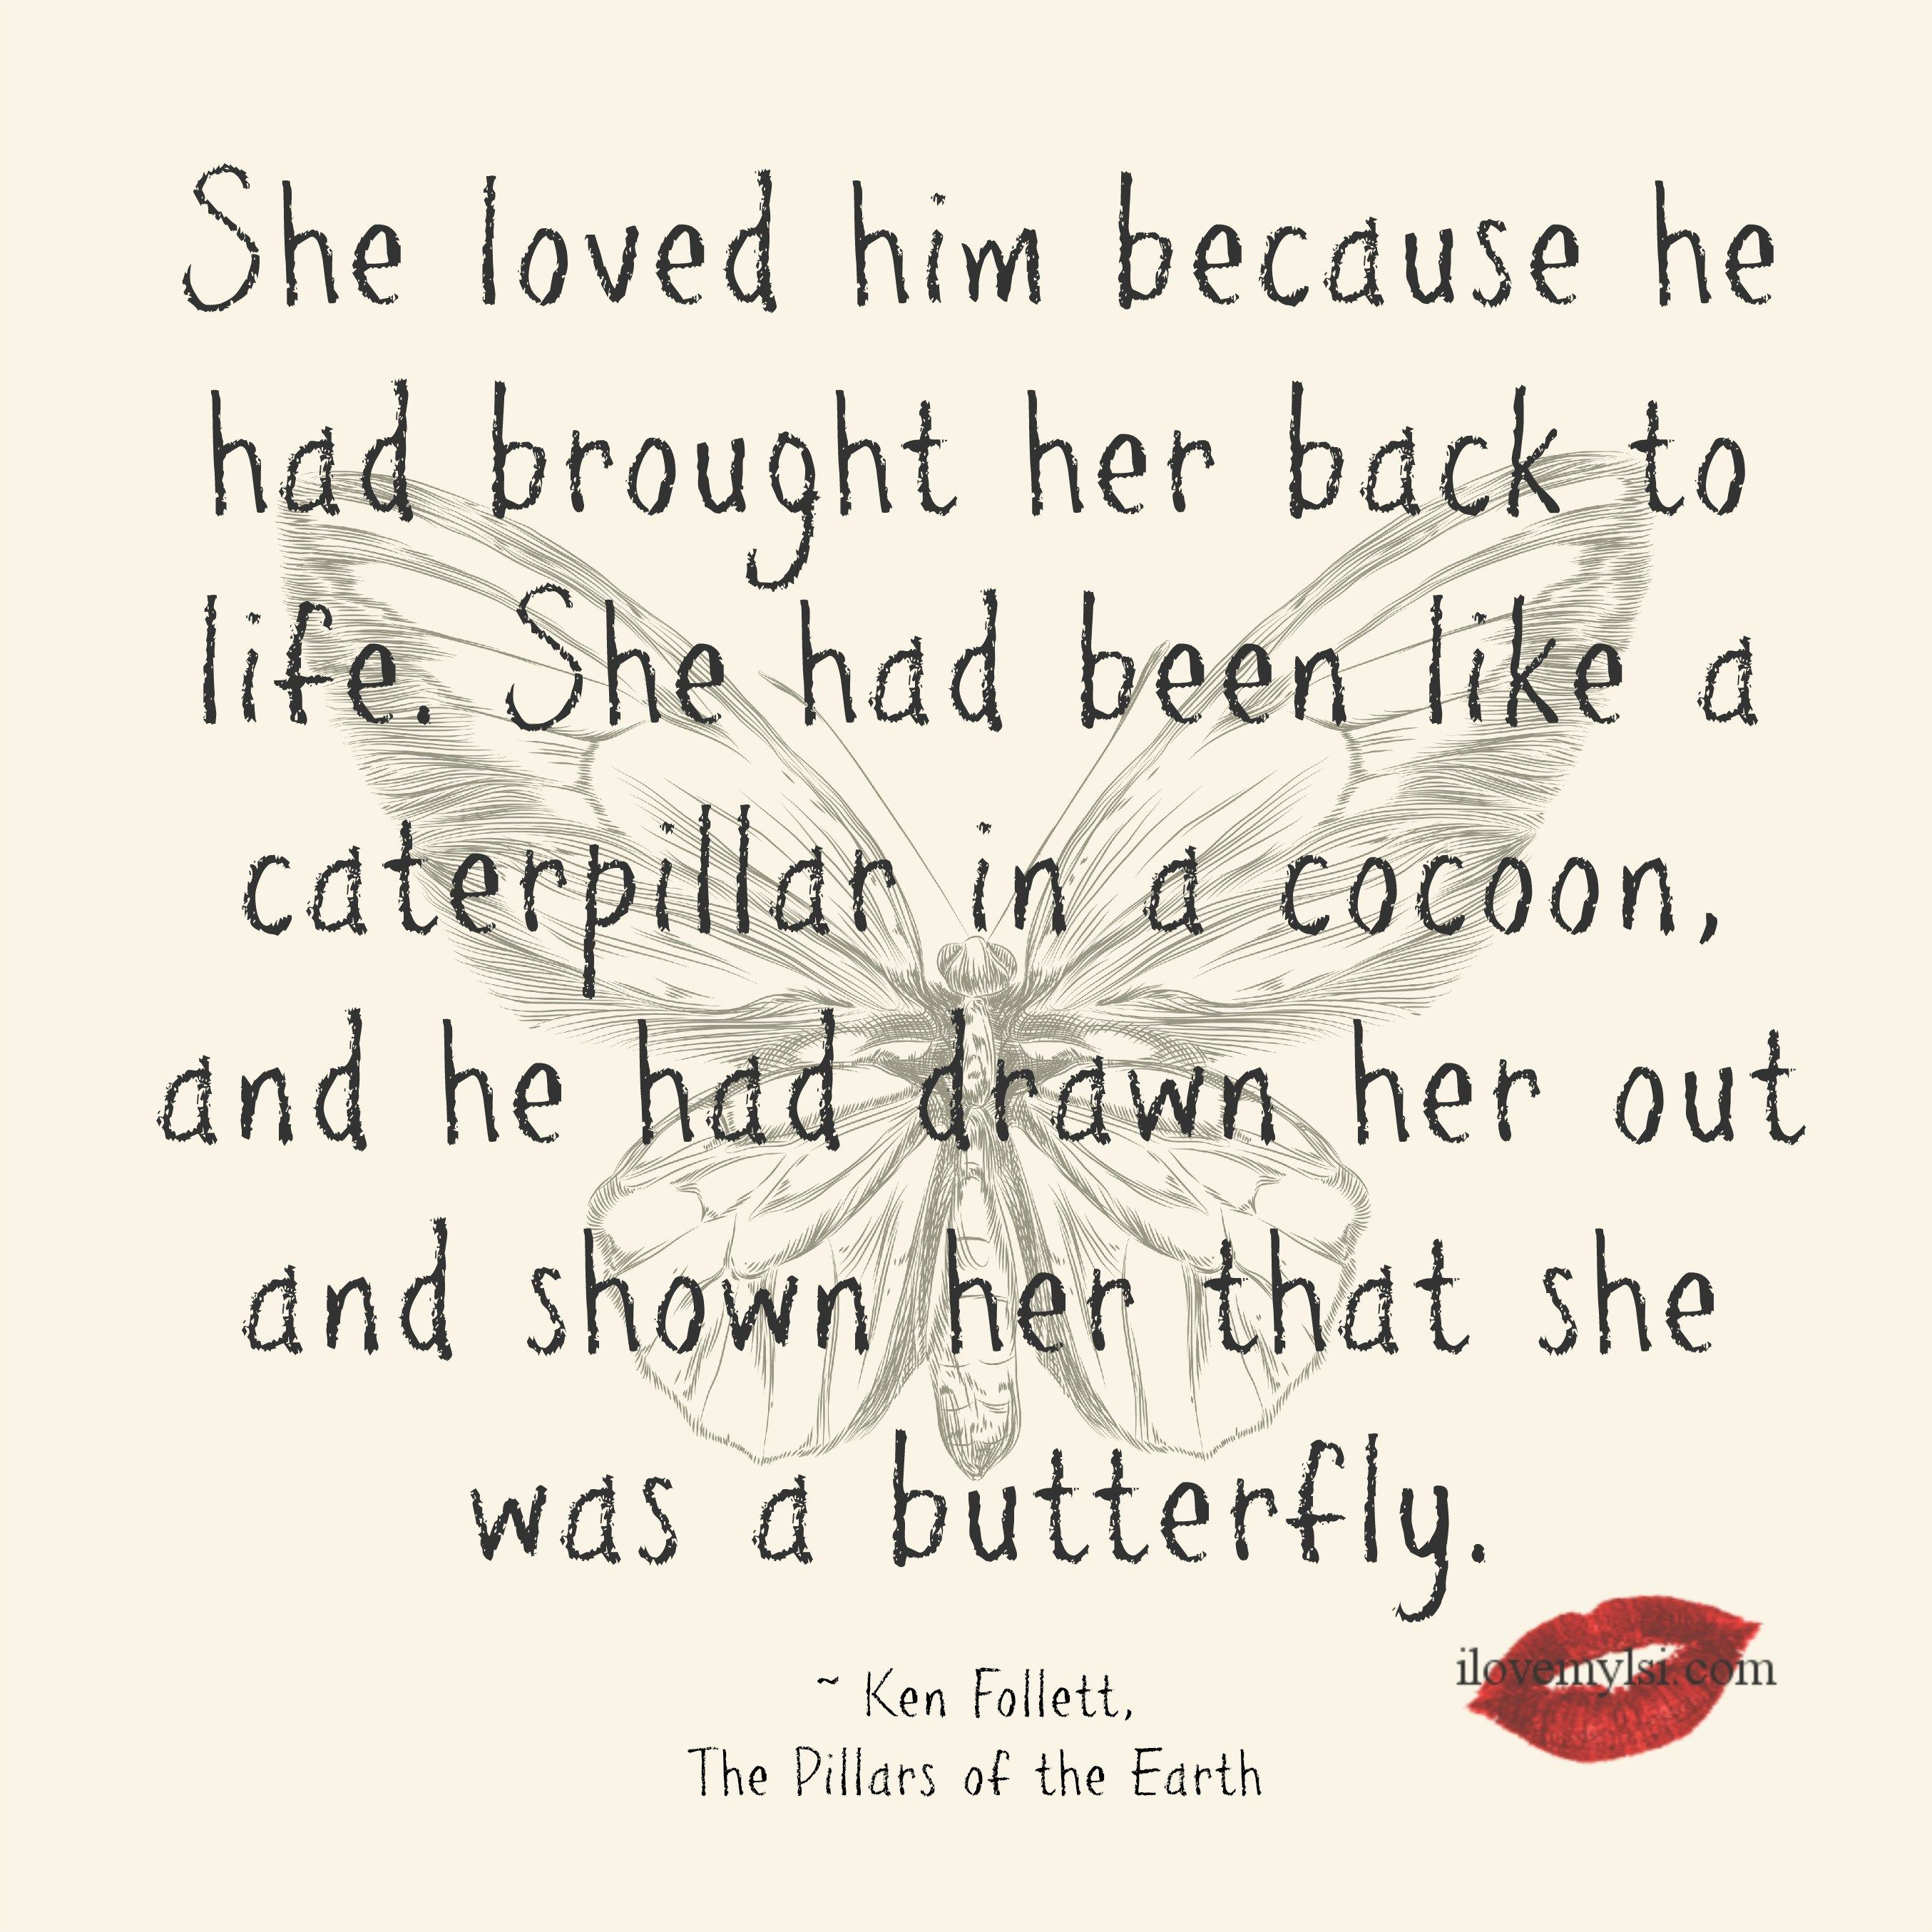 Beautiful Love Quotes For Him: The 25 Most Romantic Love Quotes You Will Ever Read